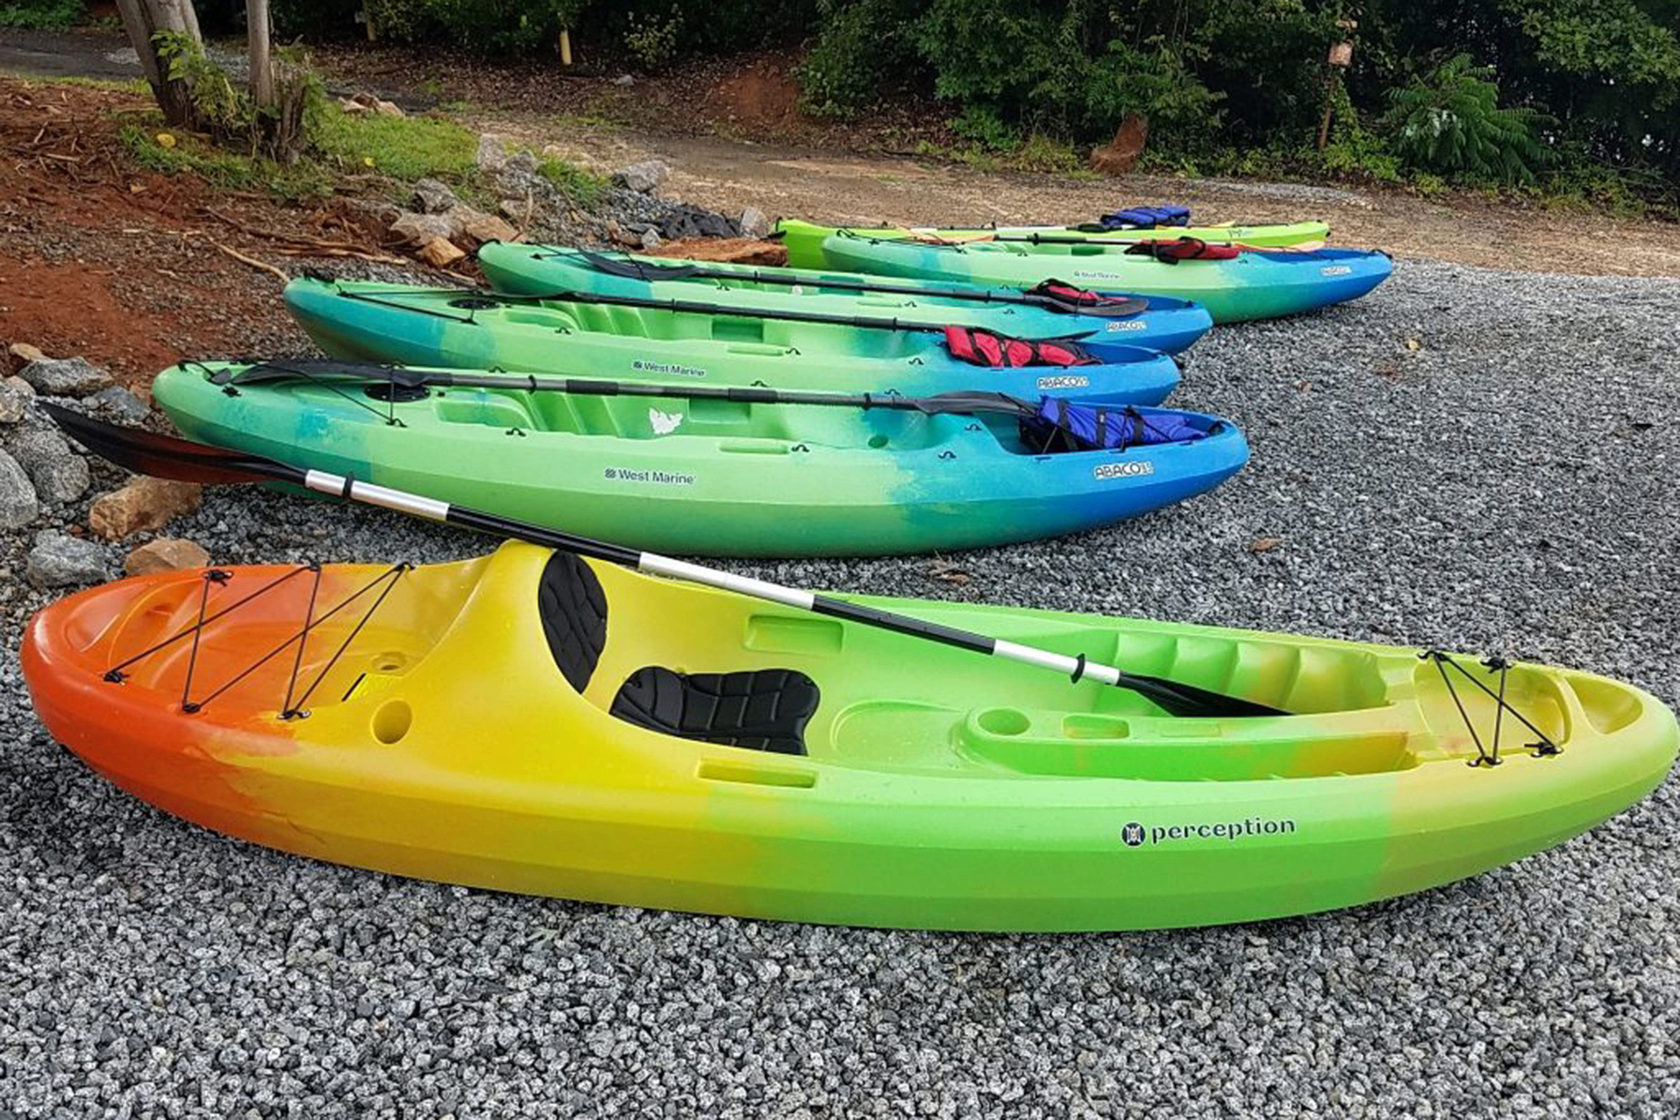 Access Kayak - Commercial Recreation Specialists